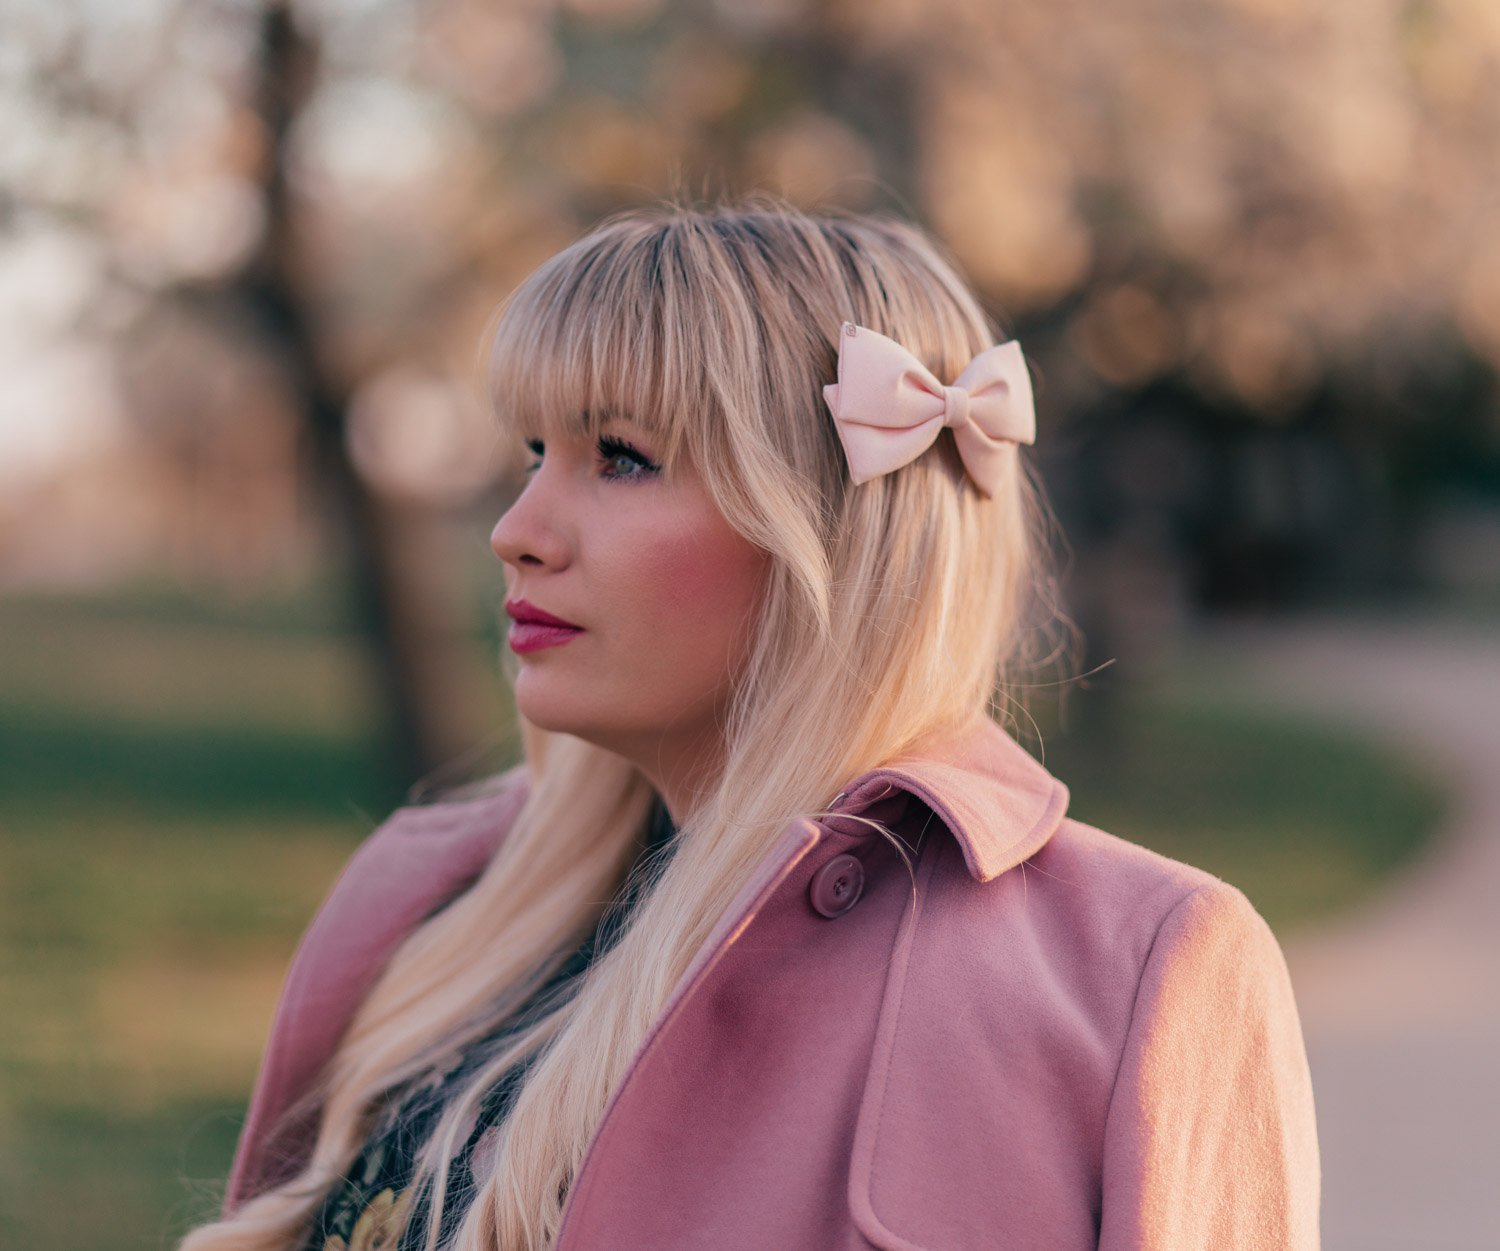 Elizabeth Hugen of Lizzie in Lace styles a pink hair bow and shares fashion trends for petites